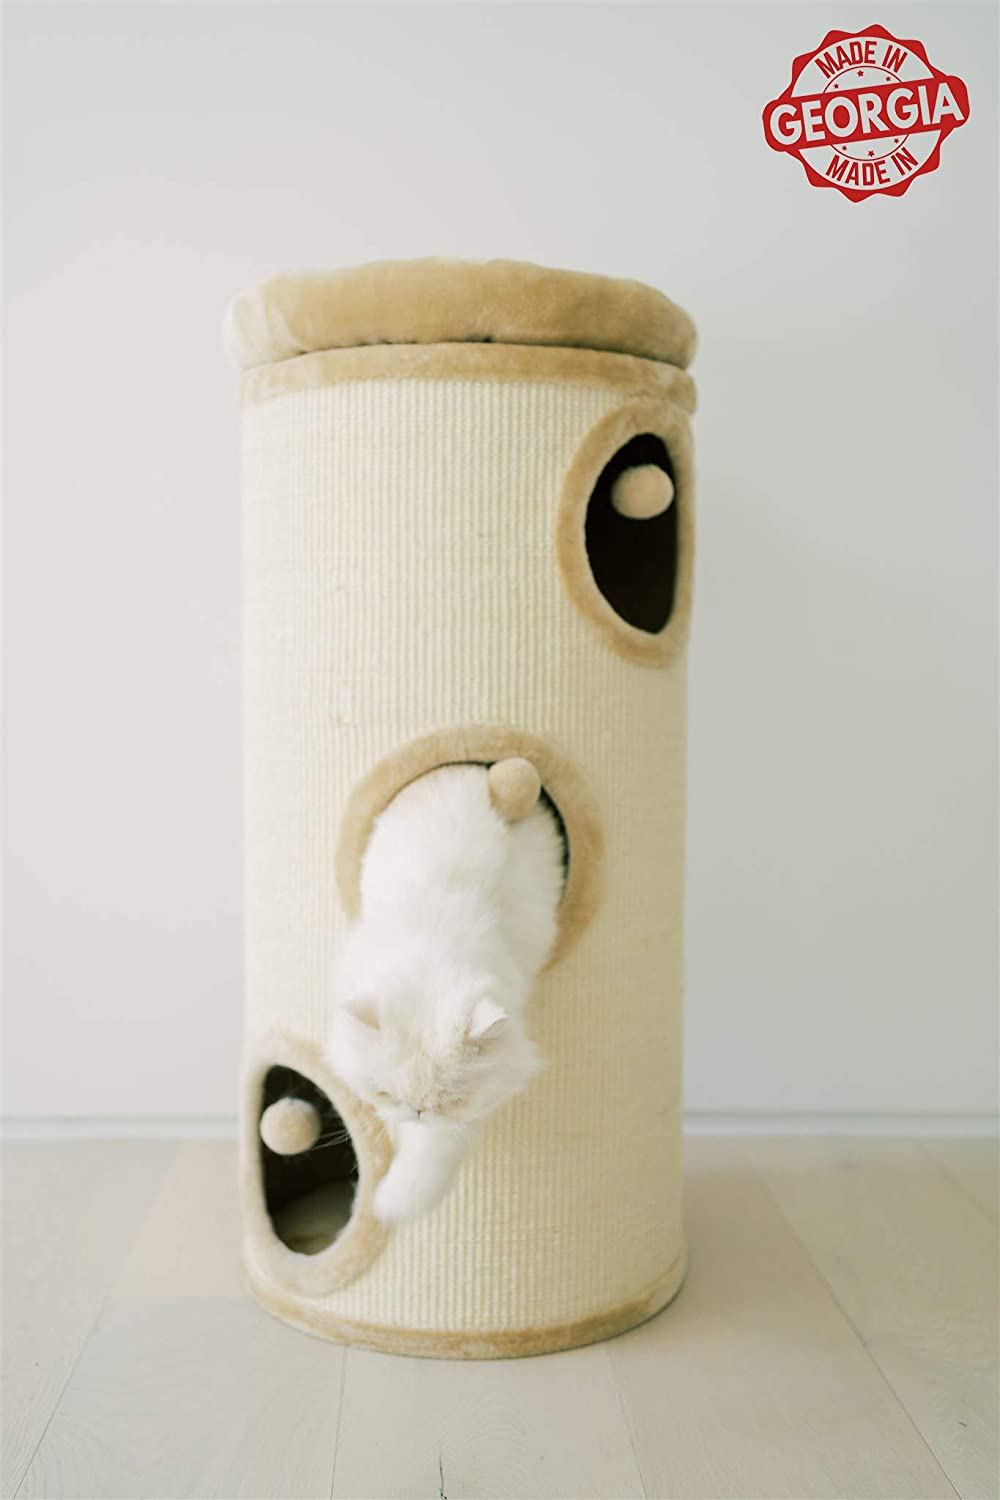 Made in Georgia Natural Sisal-Covered Scratch Barrel with Top High Edge Snuggle Bed PAWMONA 37 3 Story Cat Tree Condo Barrel Tower Machine Washable Great Gift for Cat Lovers